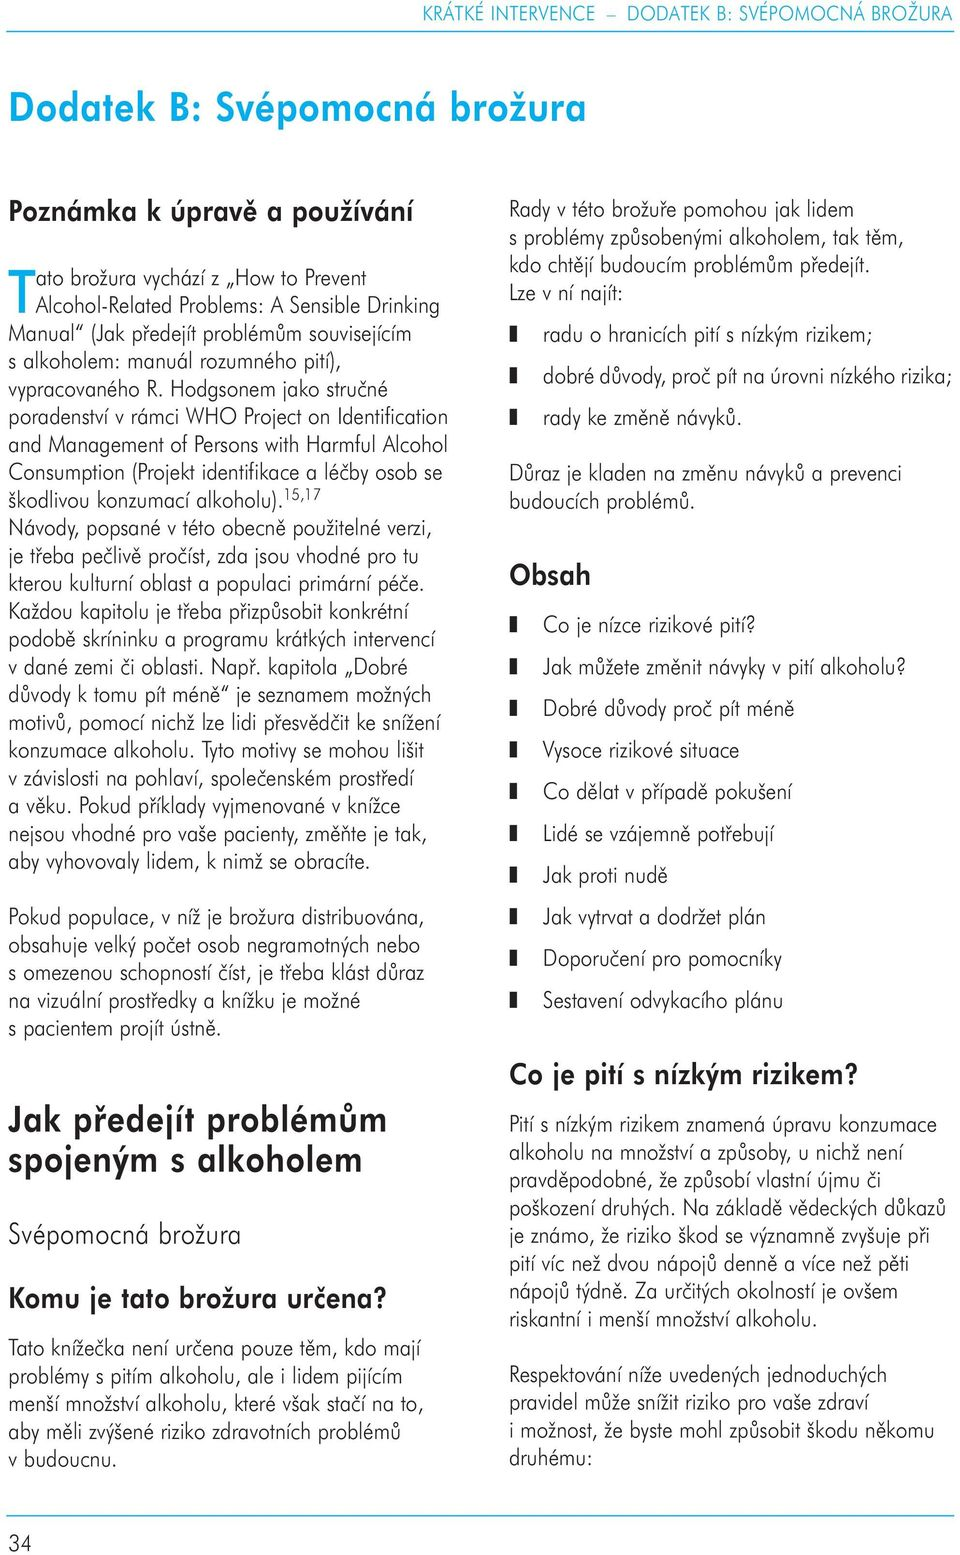 Hodgsonem jako stručné poradenství v rámci WHO Project on Identification and Management of Persons with Harmful Alcohol Consumption (Projekt identifikace a léčby osob se škodlivou konzumací alkoholu).